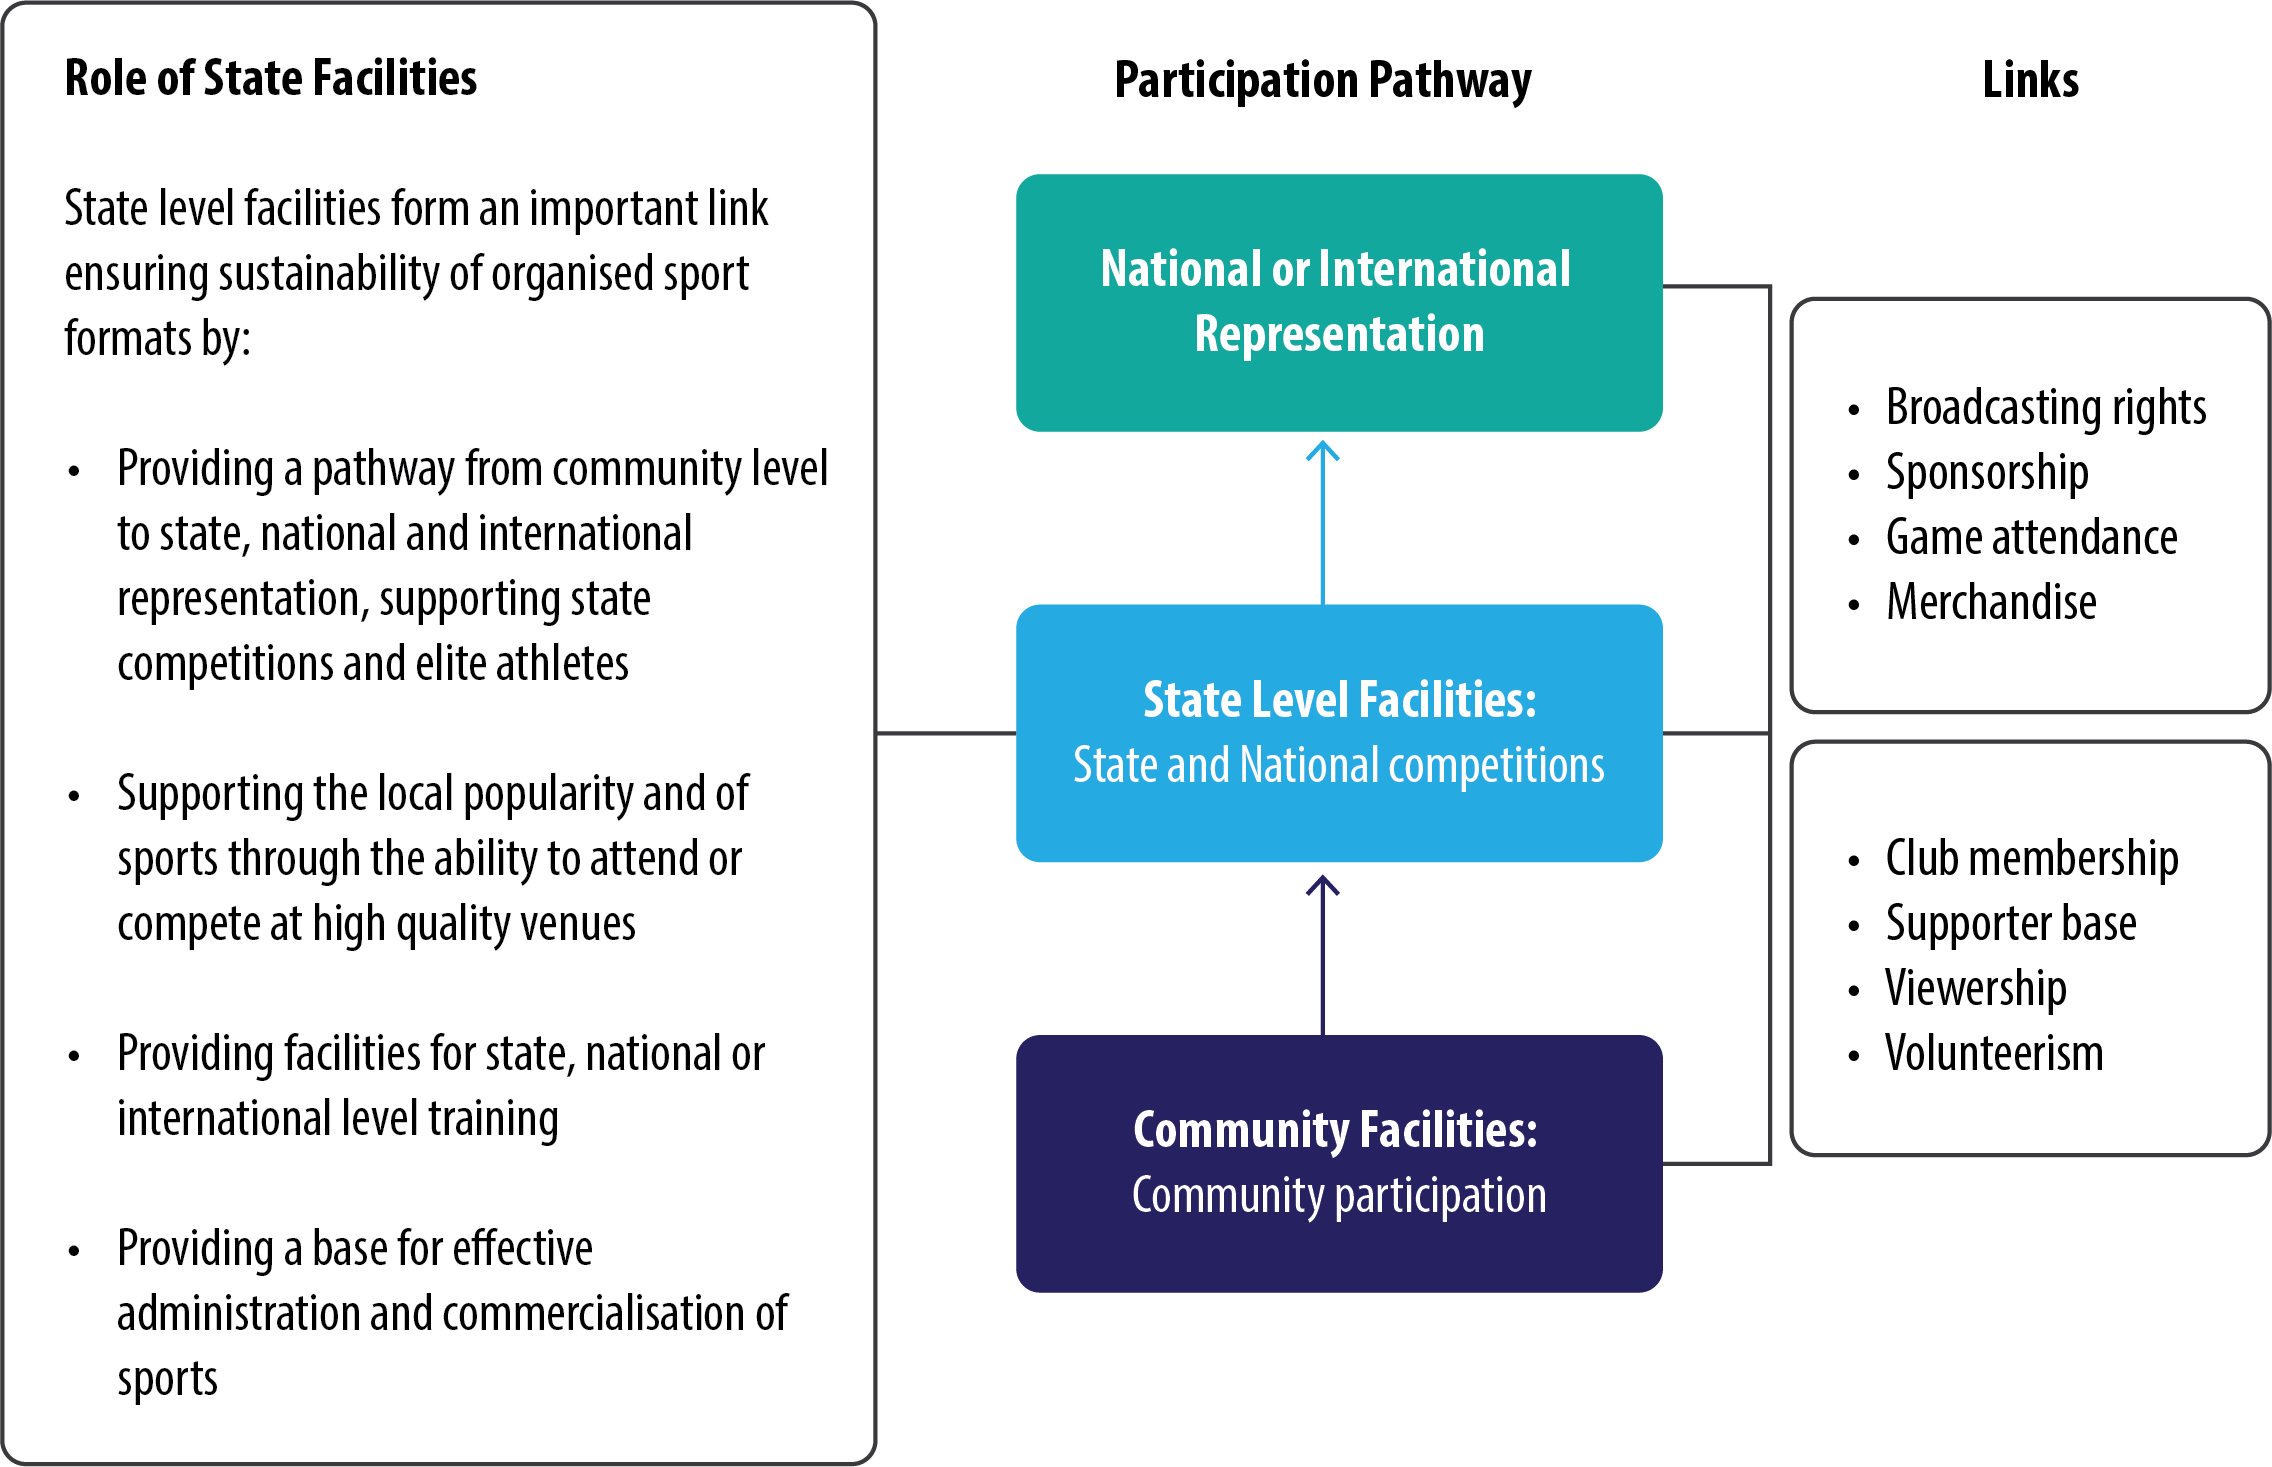 Figure 1. The Role of State Sporting Infrastructure